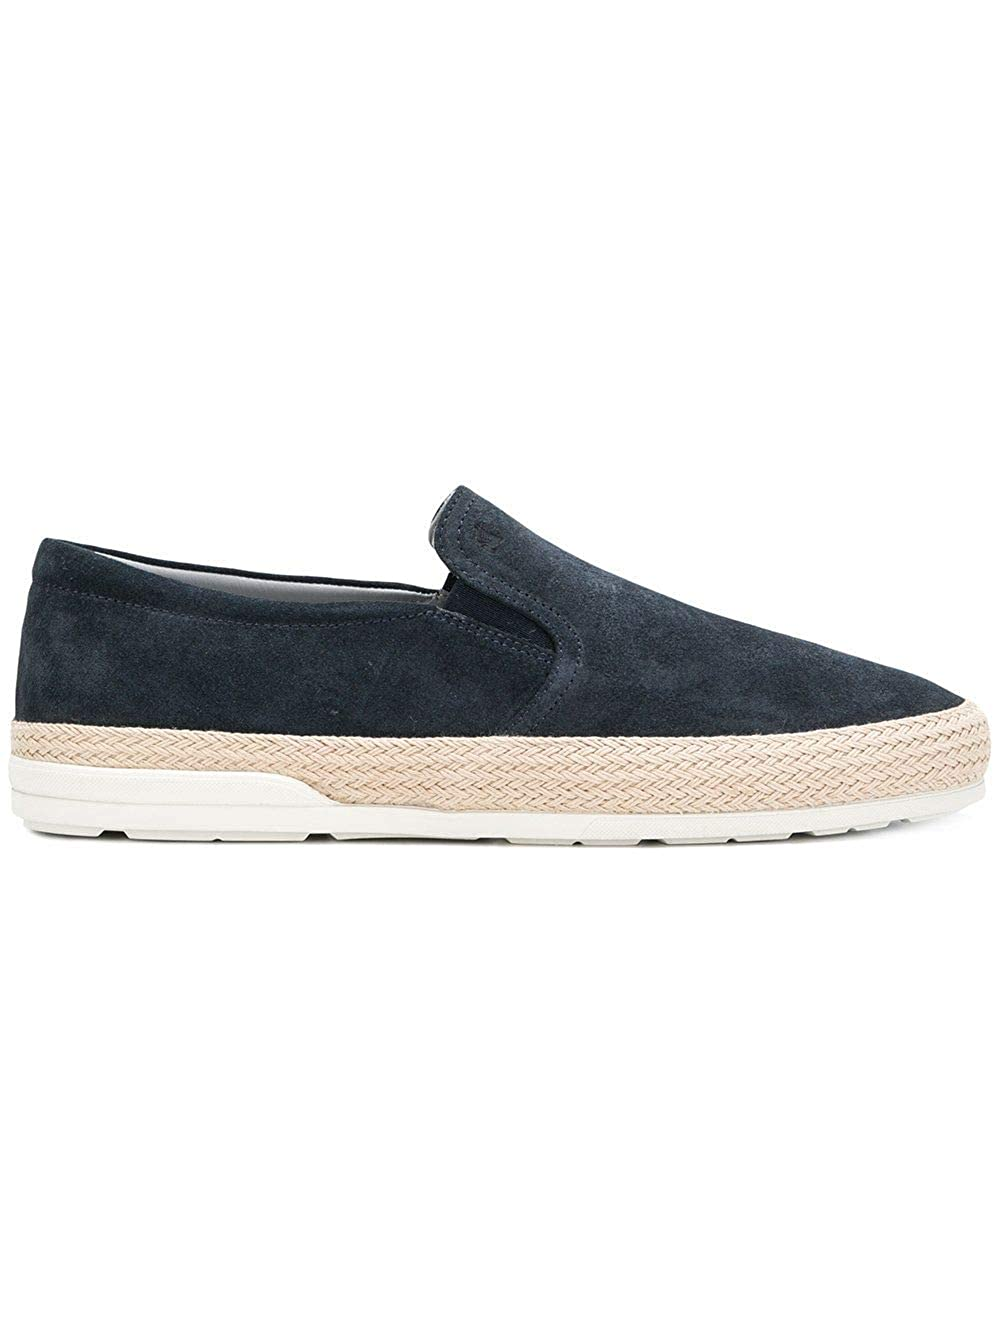 - Hogan Men's HXM3580AE50HG0U805 bluee Leather Slip On Sneakers